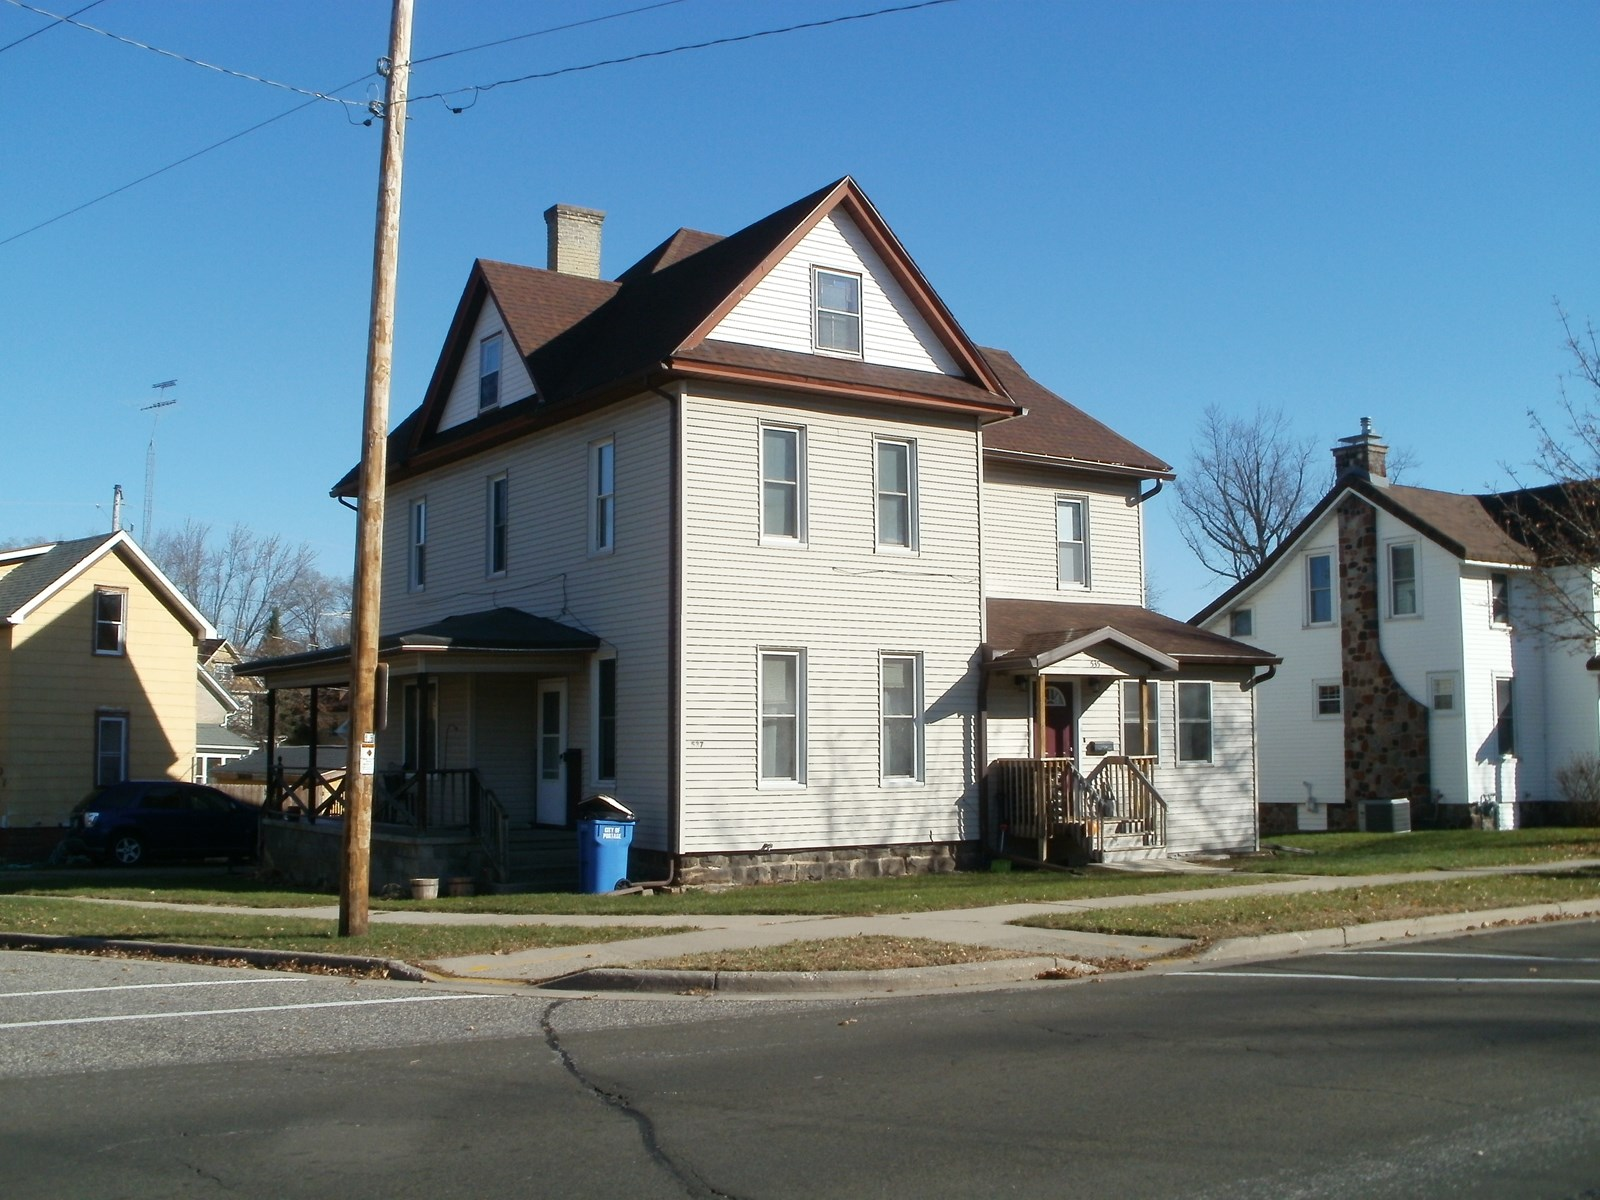 2 Unit Home in Portage WI, Columbia County for Sale